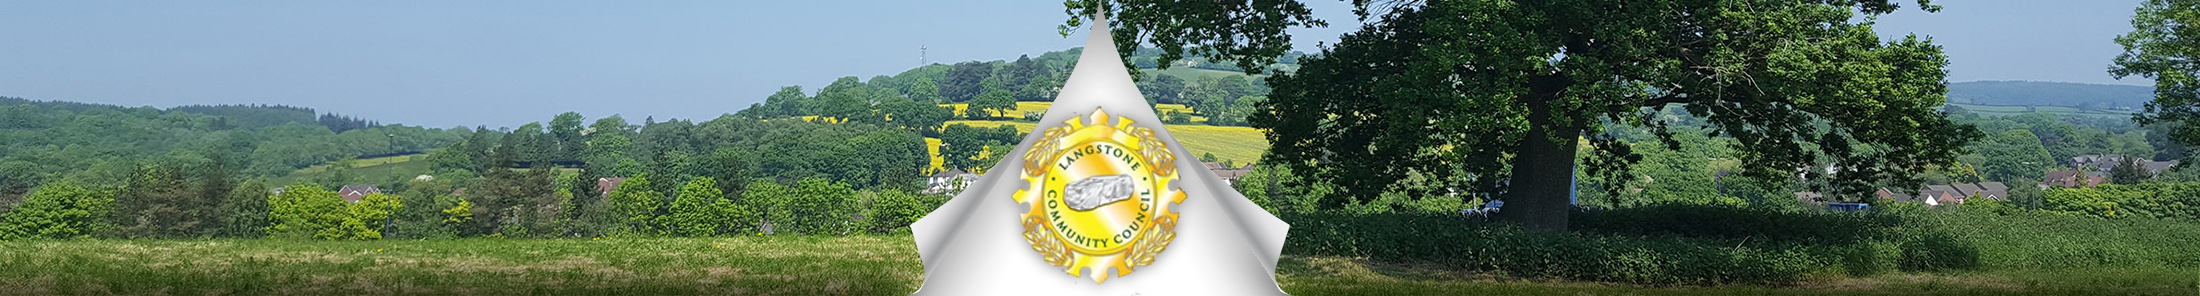 Header Image for Langstone Community Council